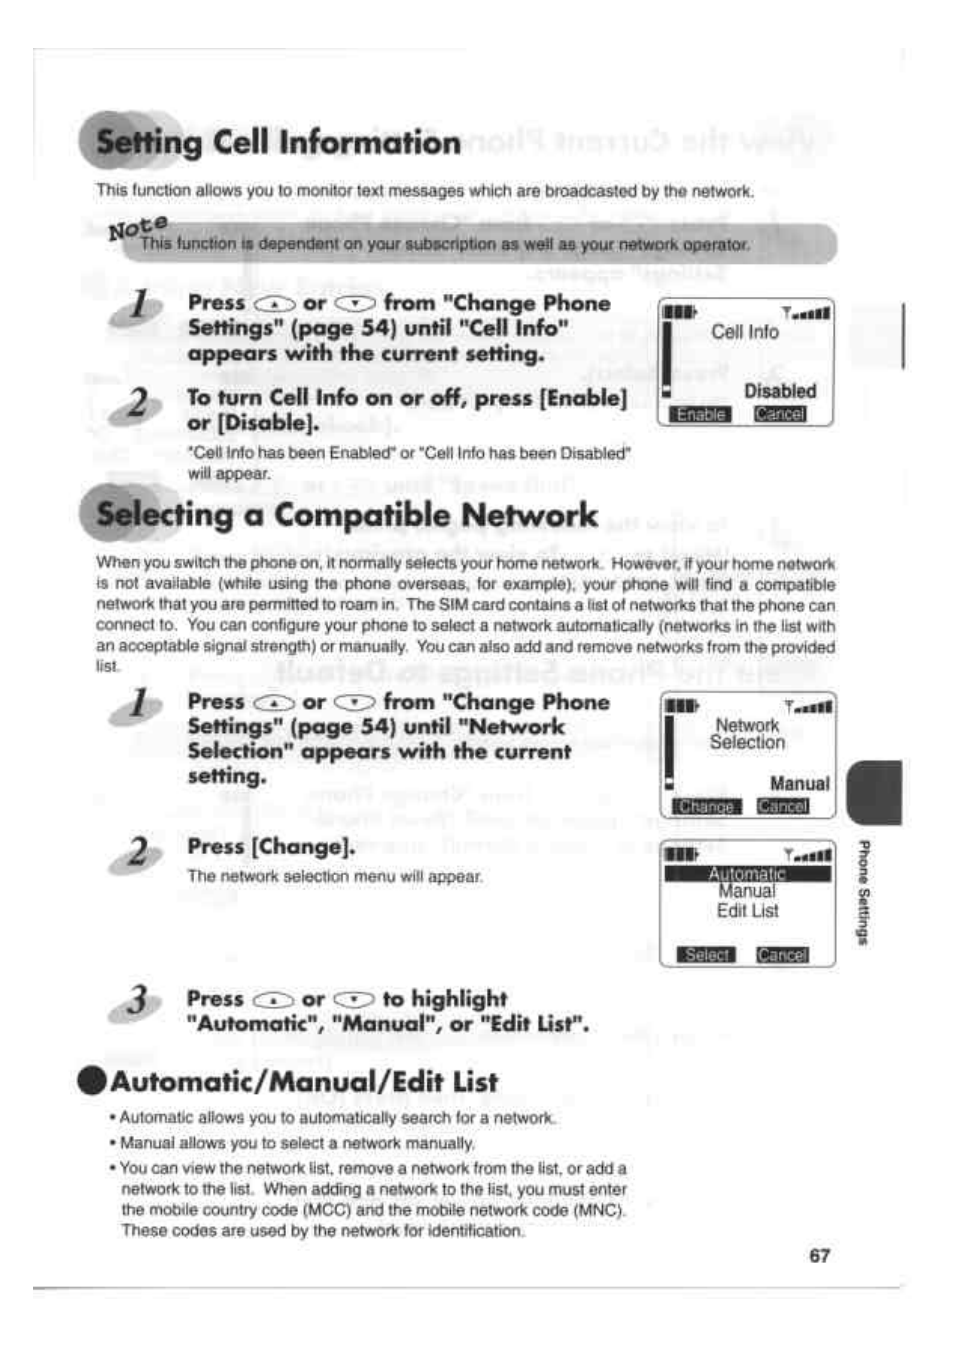 Setting cell information, Selecting a compatible network, Automahc